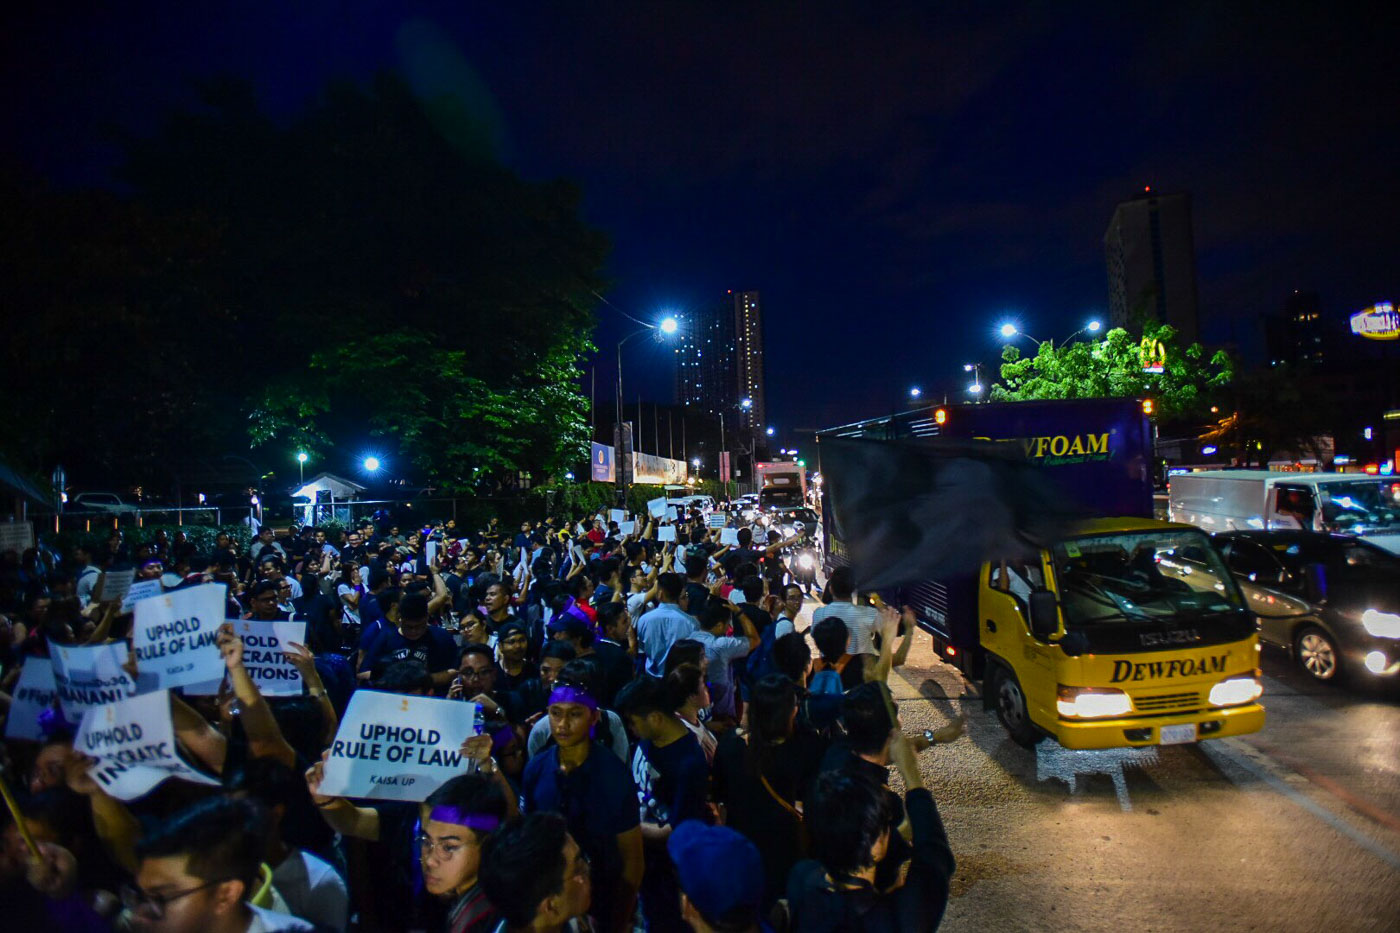 KATIPUNAN. UP Diliman and Ateneo students and faculty staged an indignation rally over the ouster of Chief Justice Sereno. Photo by Maria Tan/Rappler